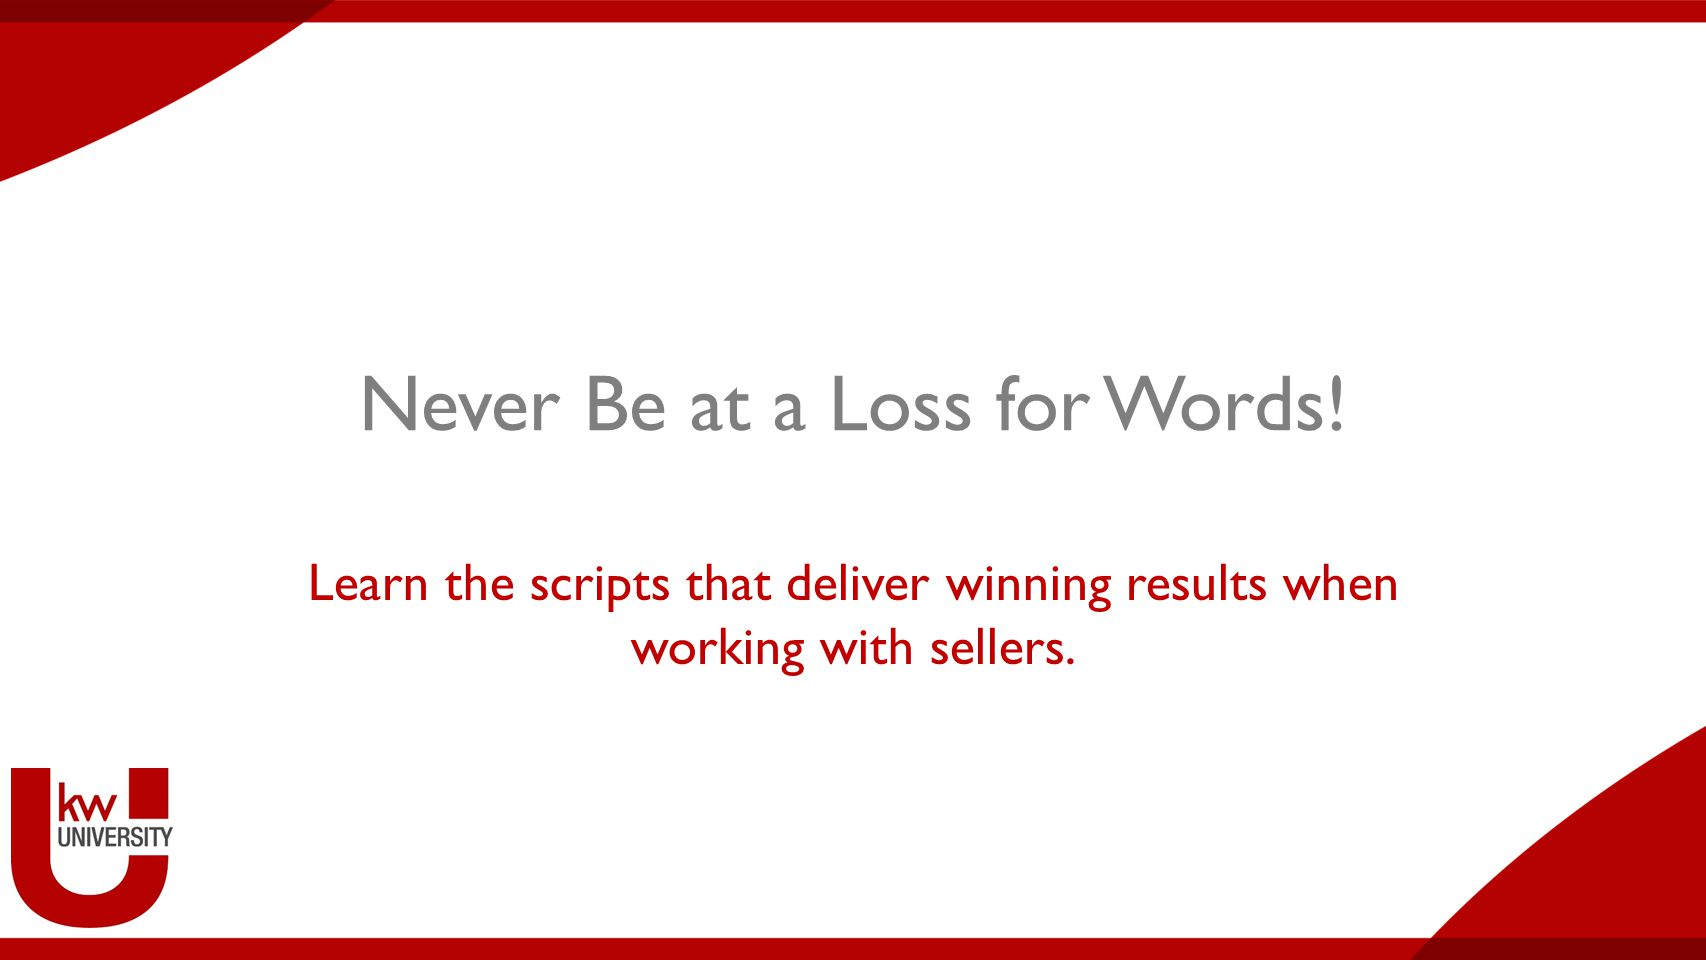 Never Be at a Loss for Words! Learn the scripts that deliver winning results when working with sellers.